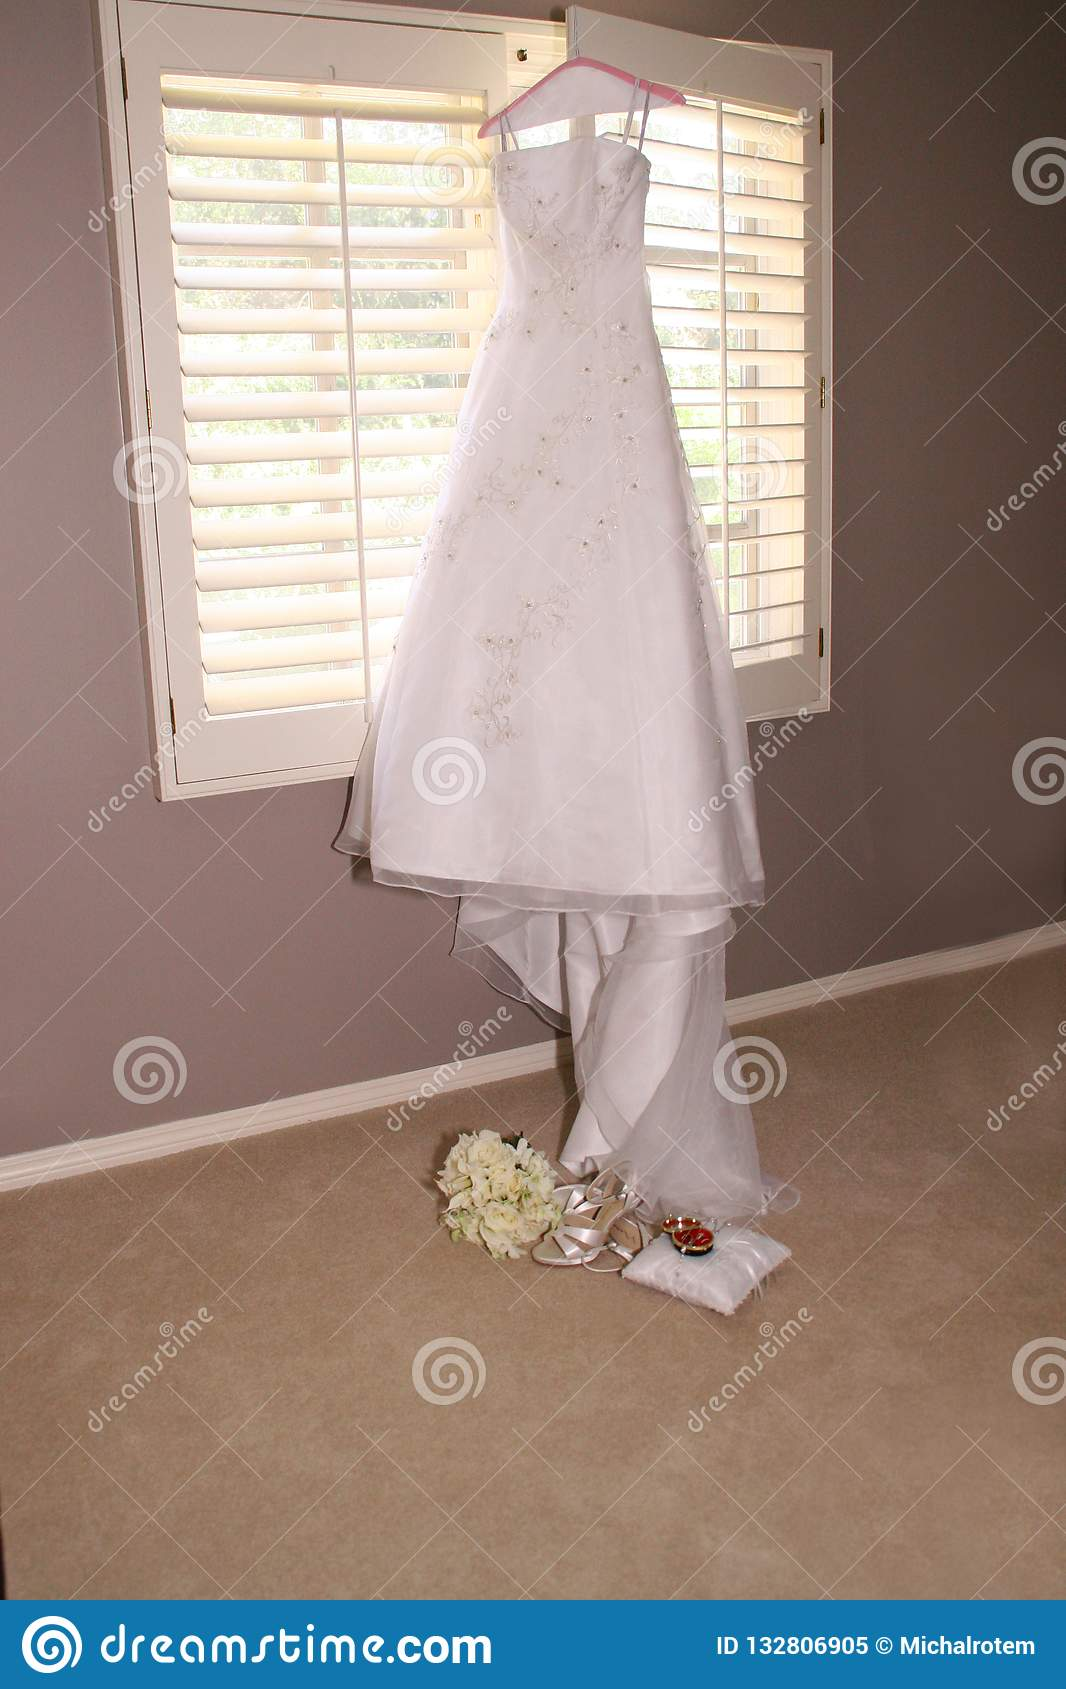 Pair Of Shoes Woman Bride Stock Image Image Of Folding